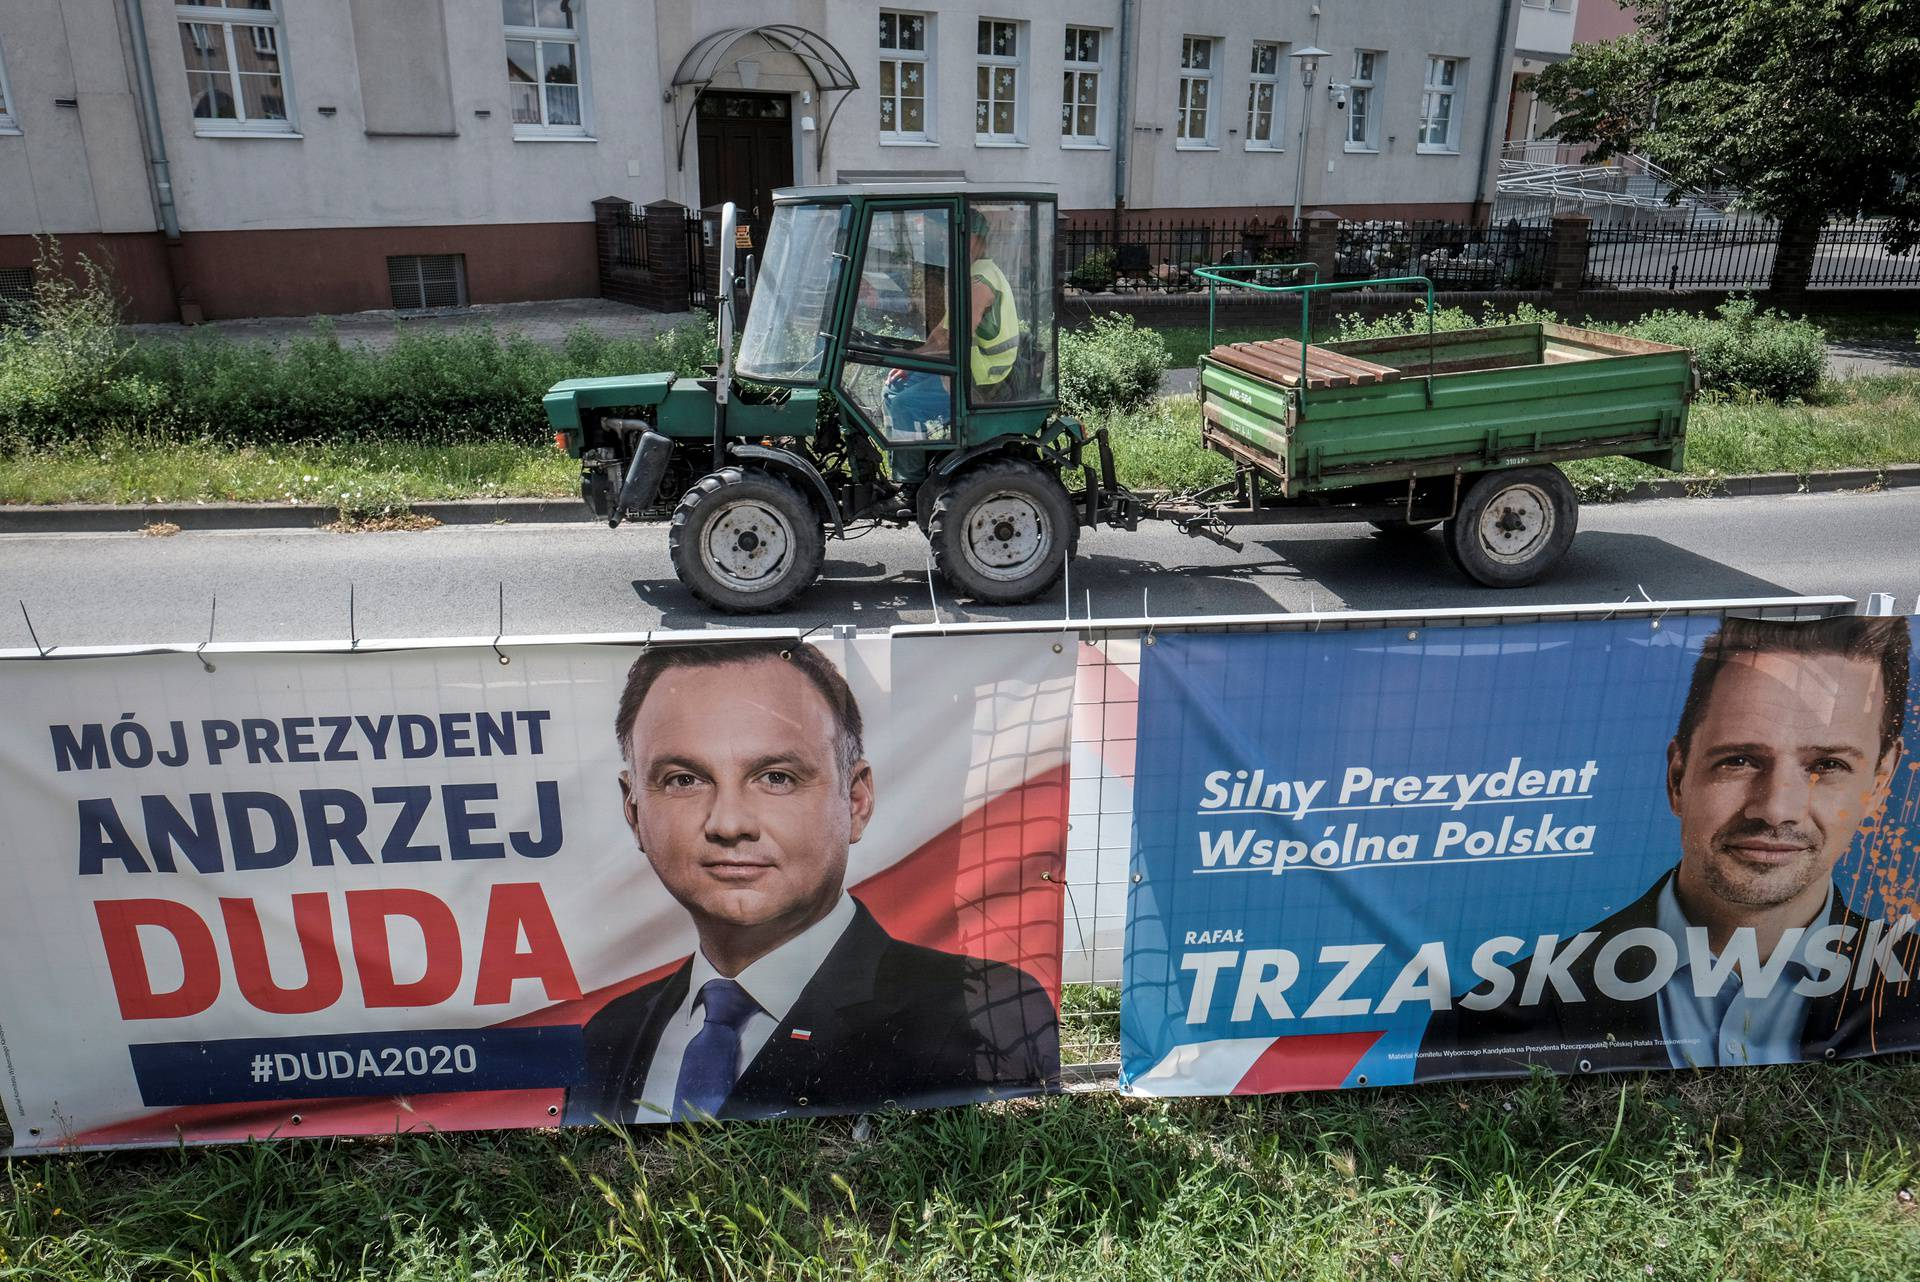 Election posters of Rafal Trzaskowski, the presidential candidate of the main Polish opposition party Civic Platform (PO) and Polish President Andrzej Duda hang on a fence in Leszno